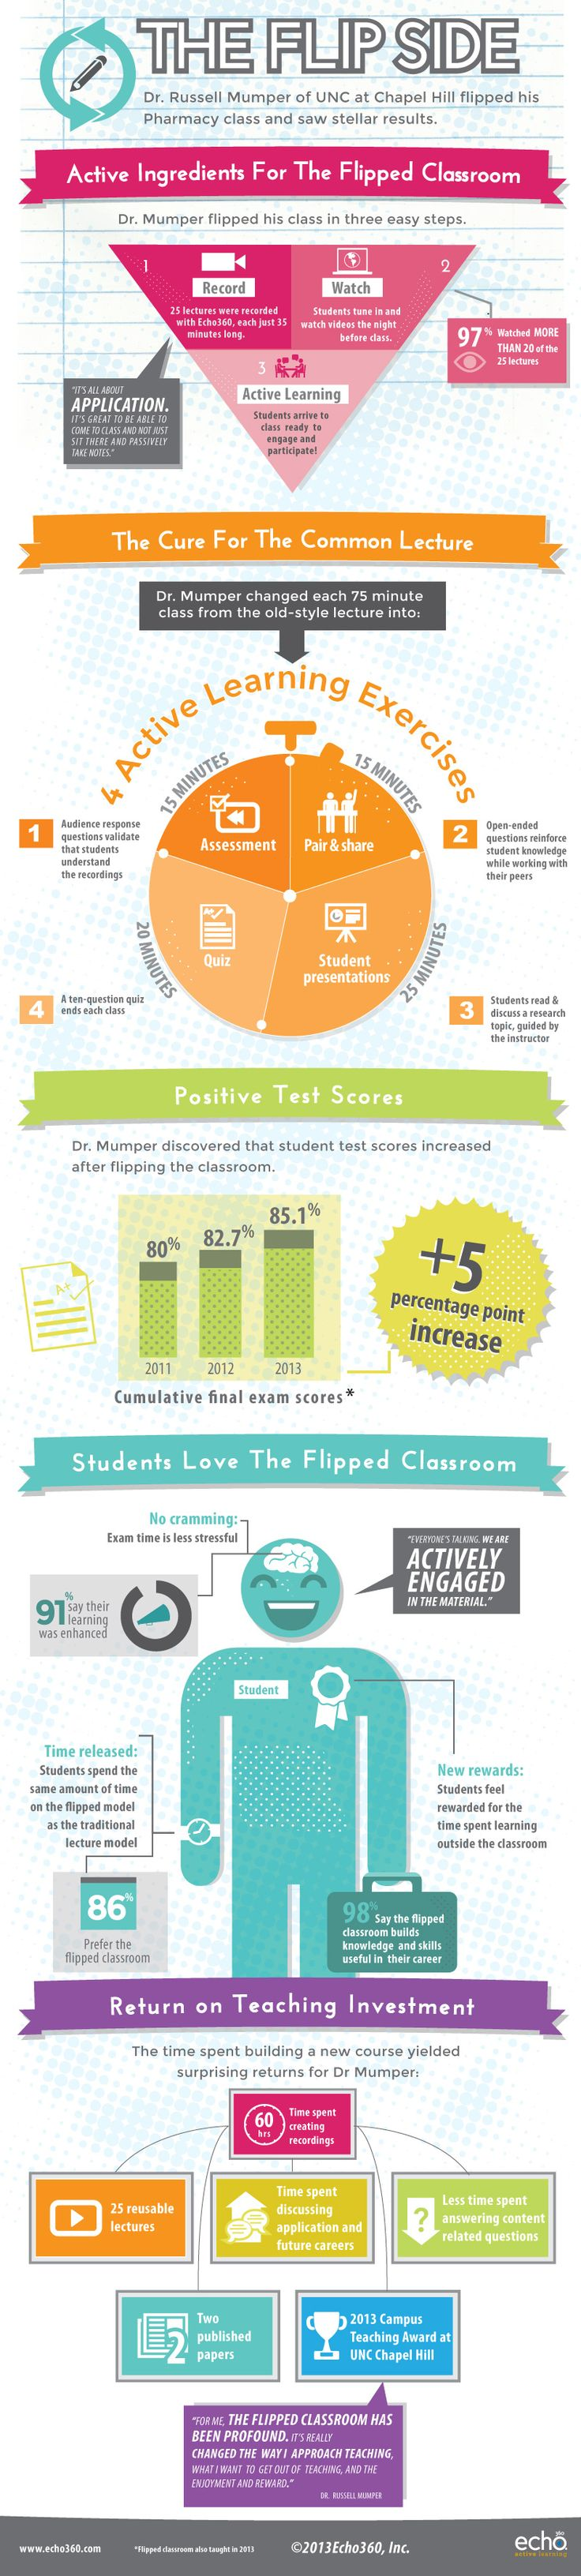 #infographic: Benefits to a flipped classroom.